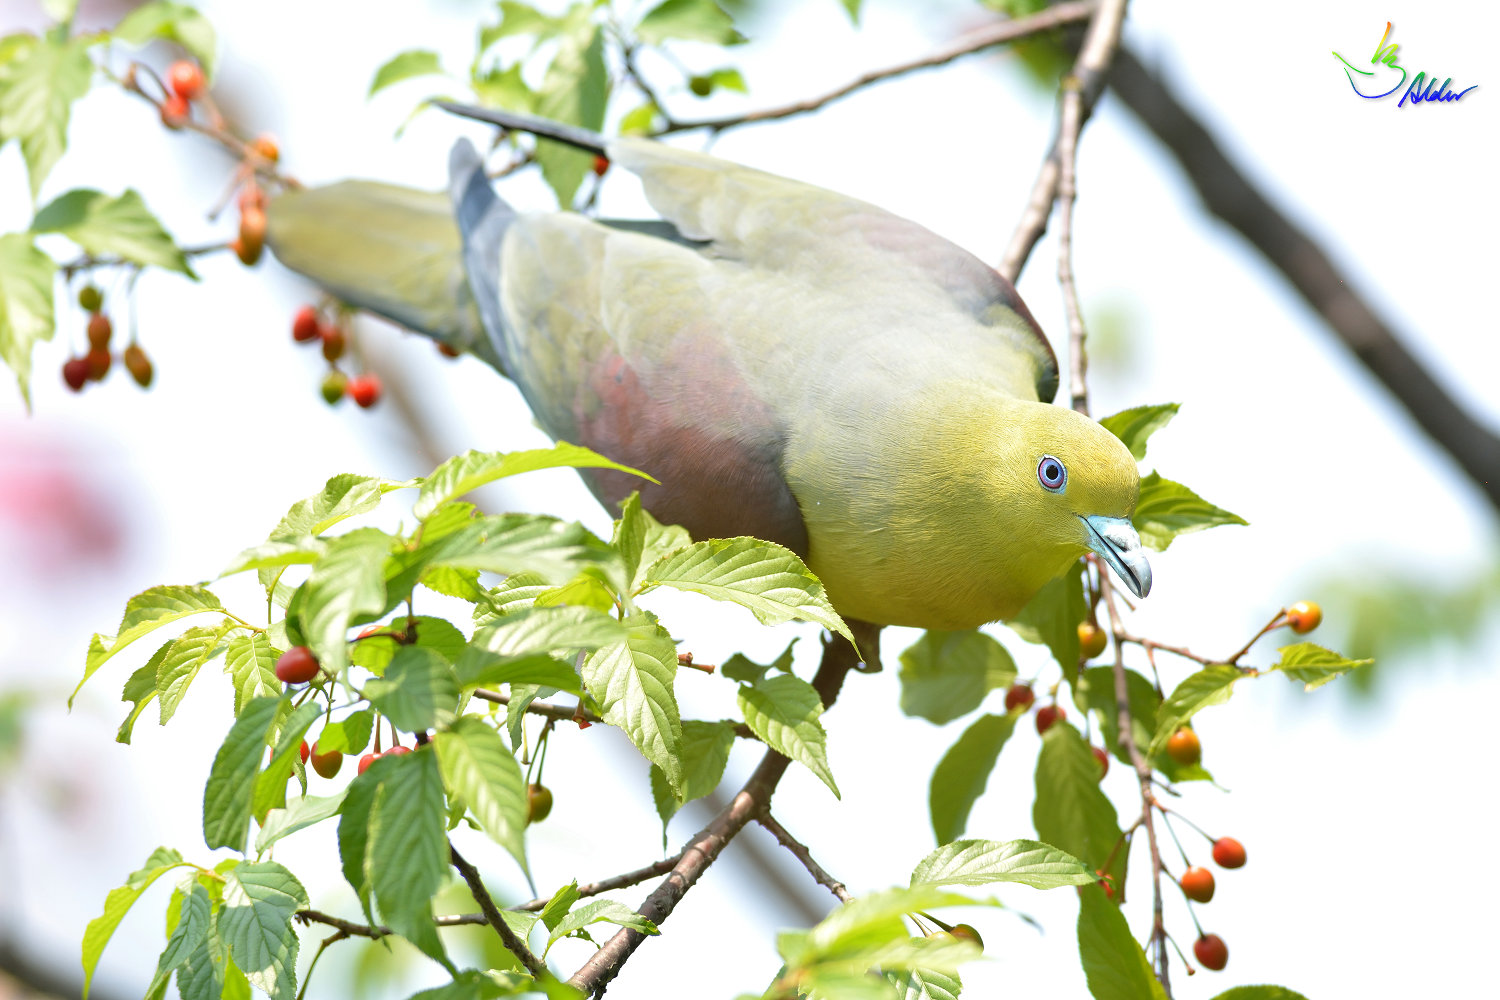 White-bellied_Green_Pigeon_5961